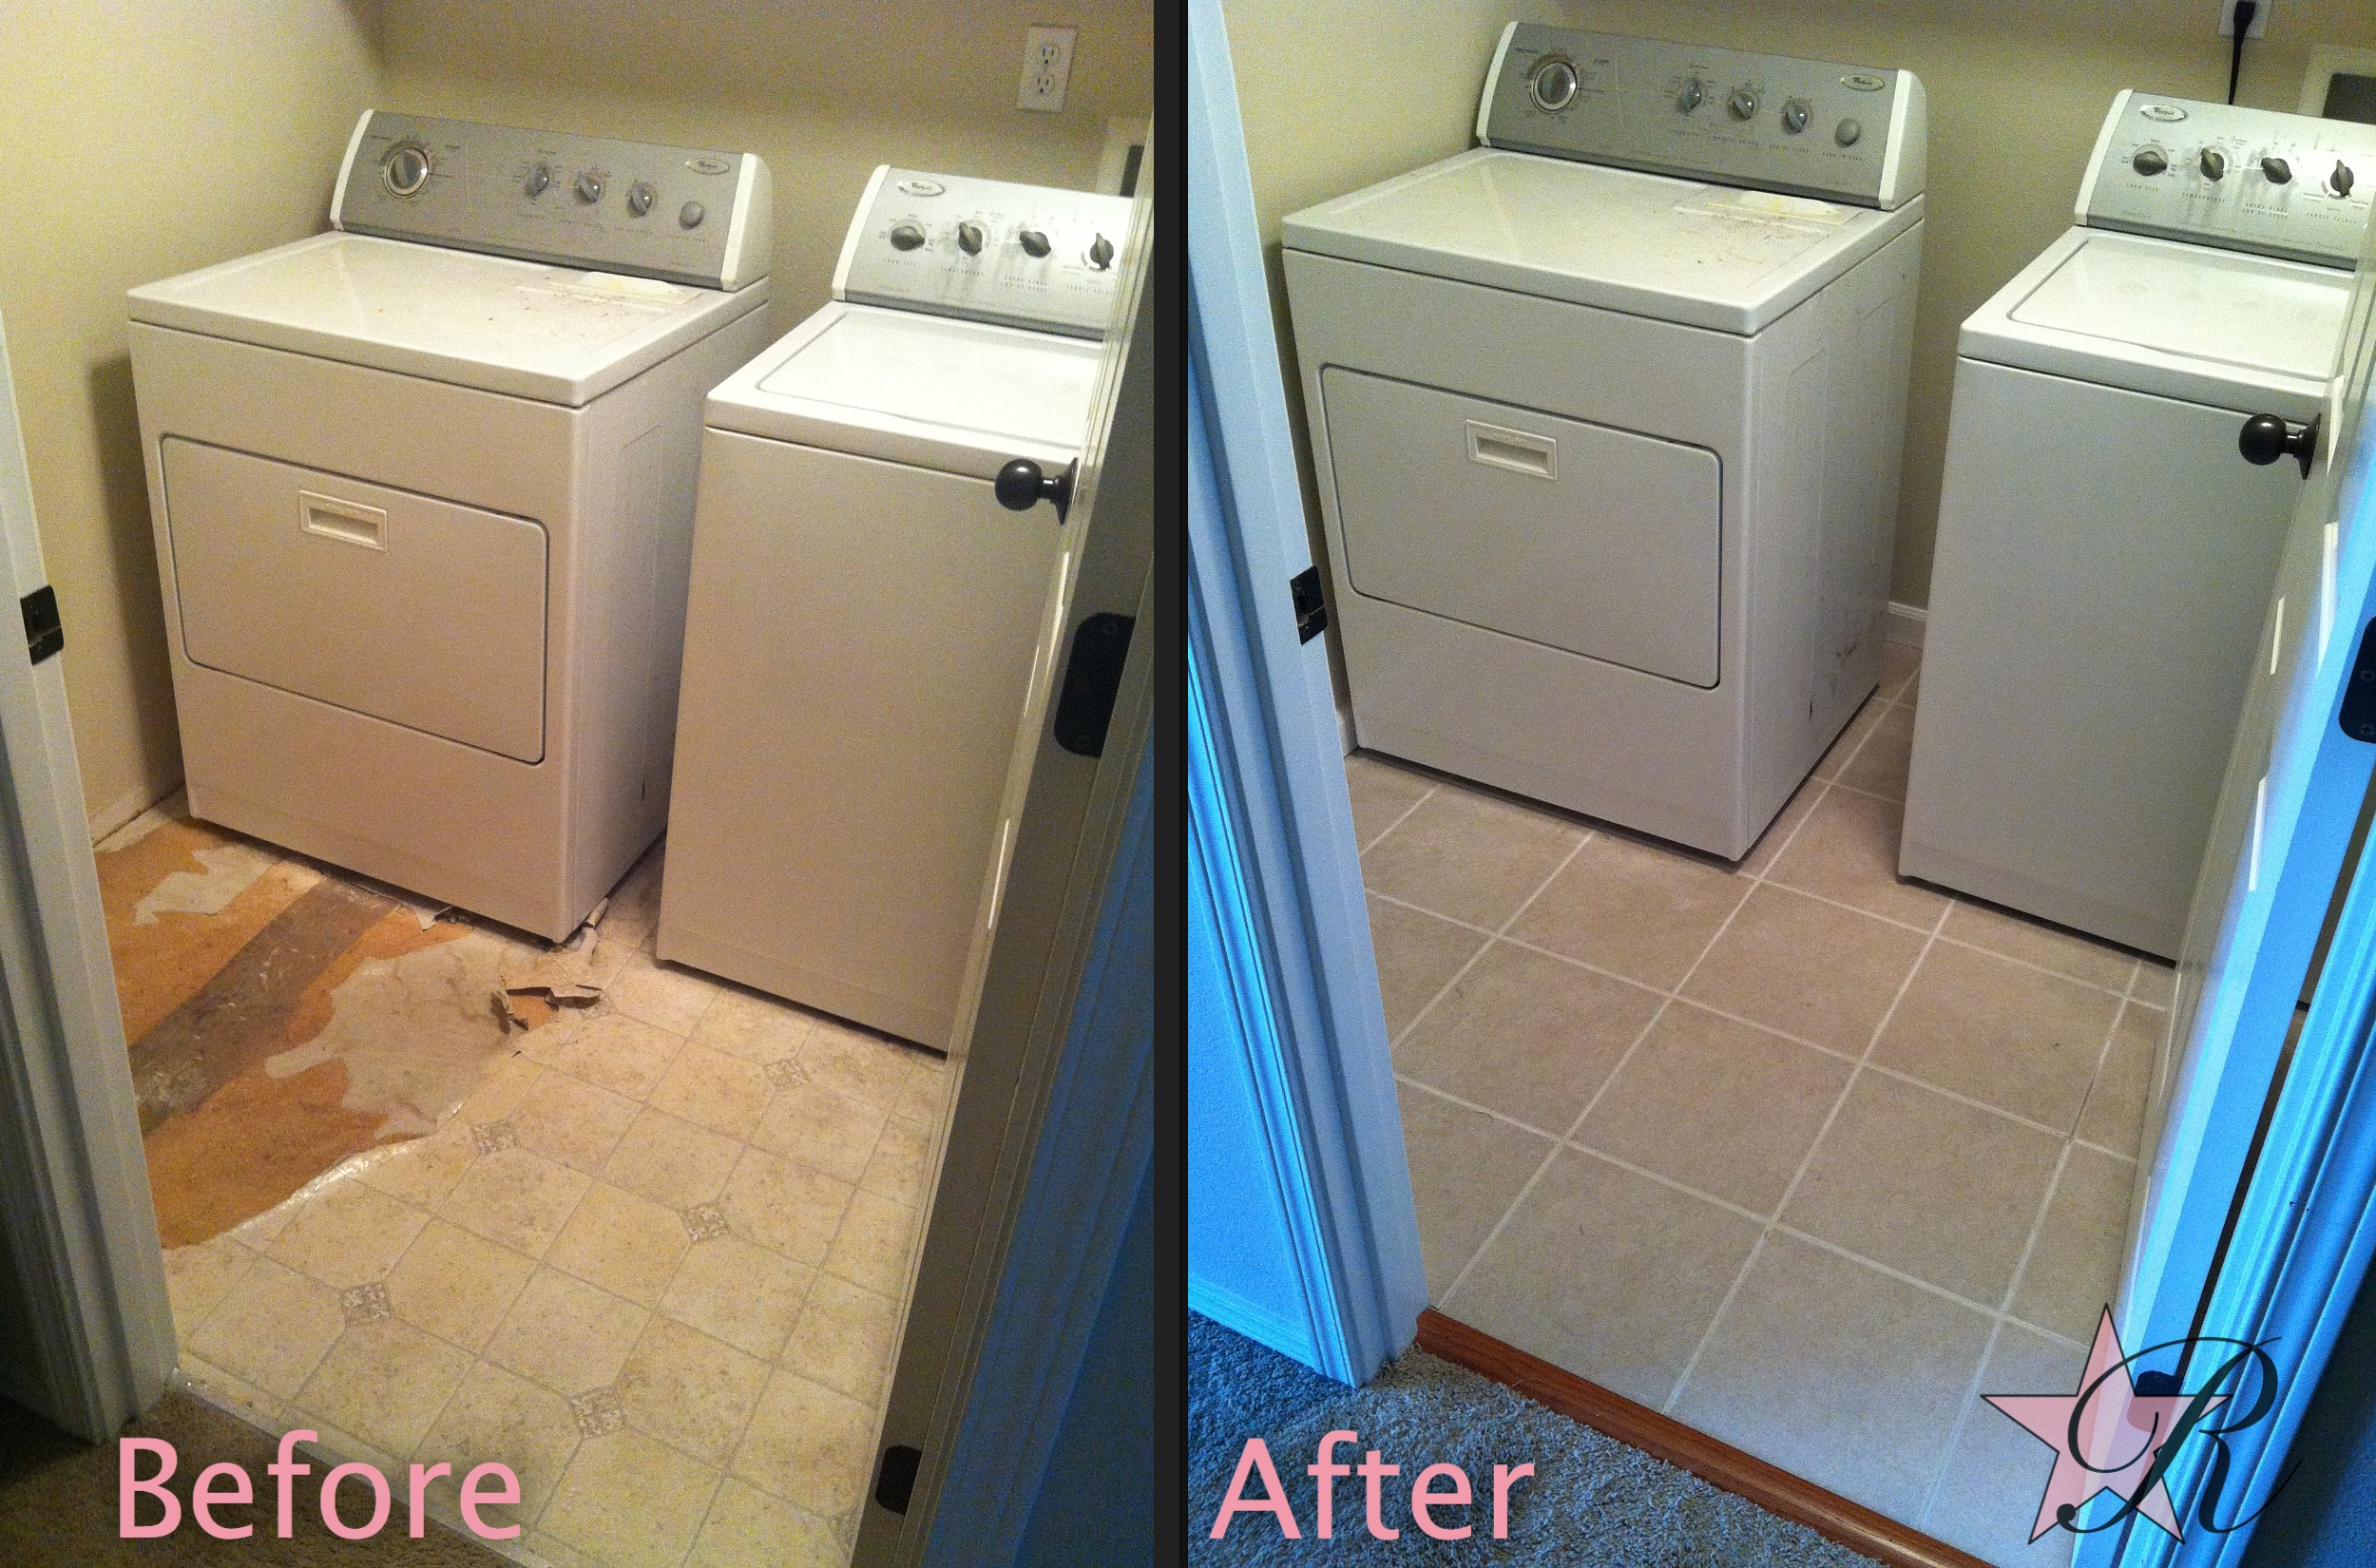 Rockstar Remodel installed a tile floor in this laundry room.